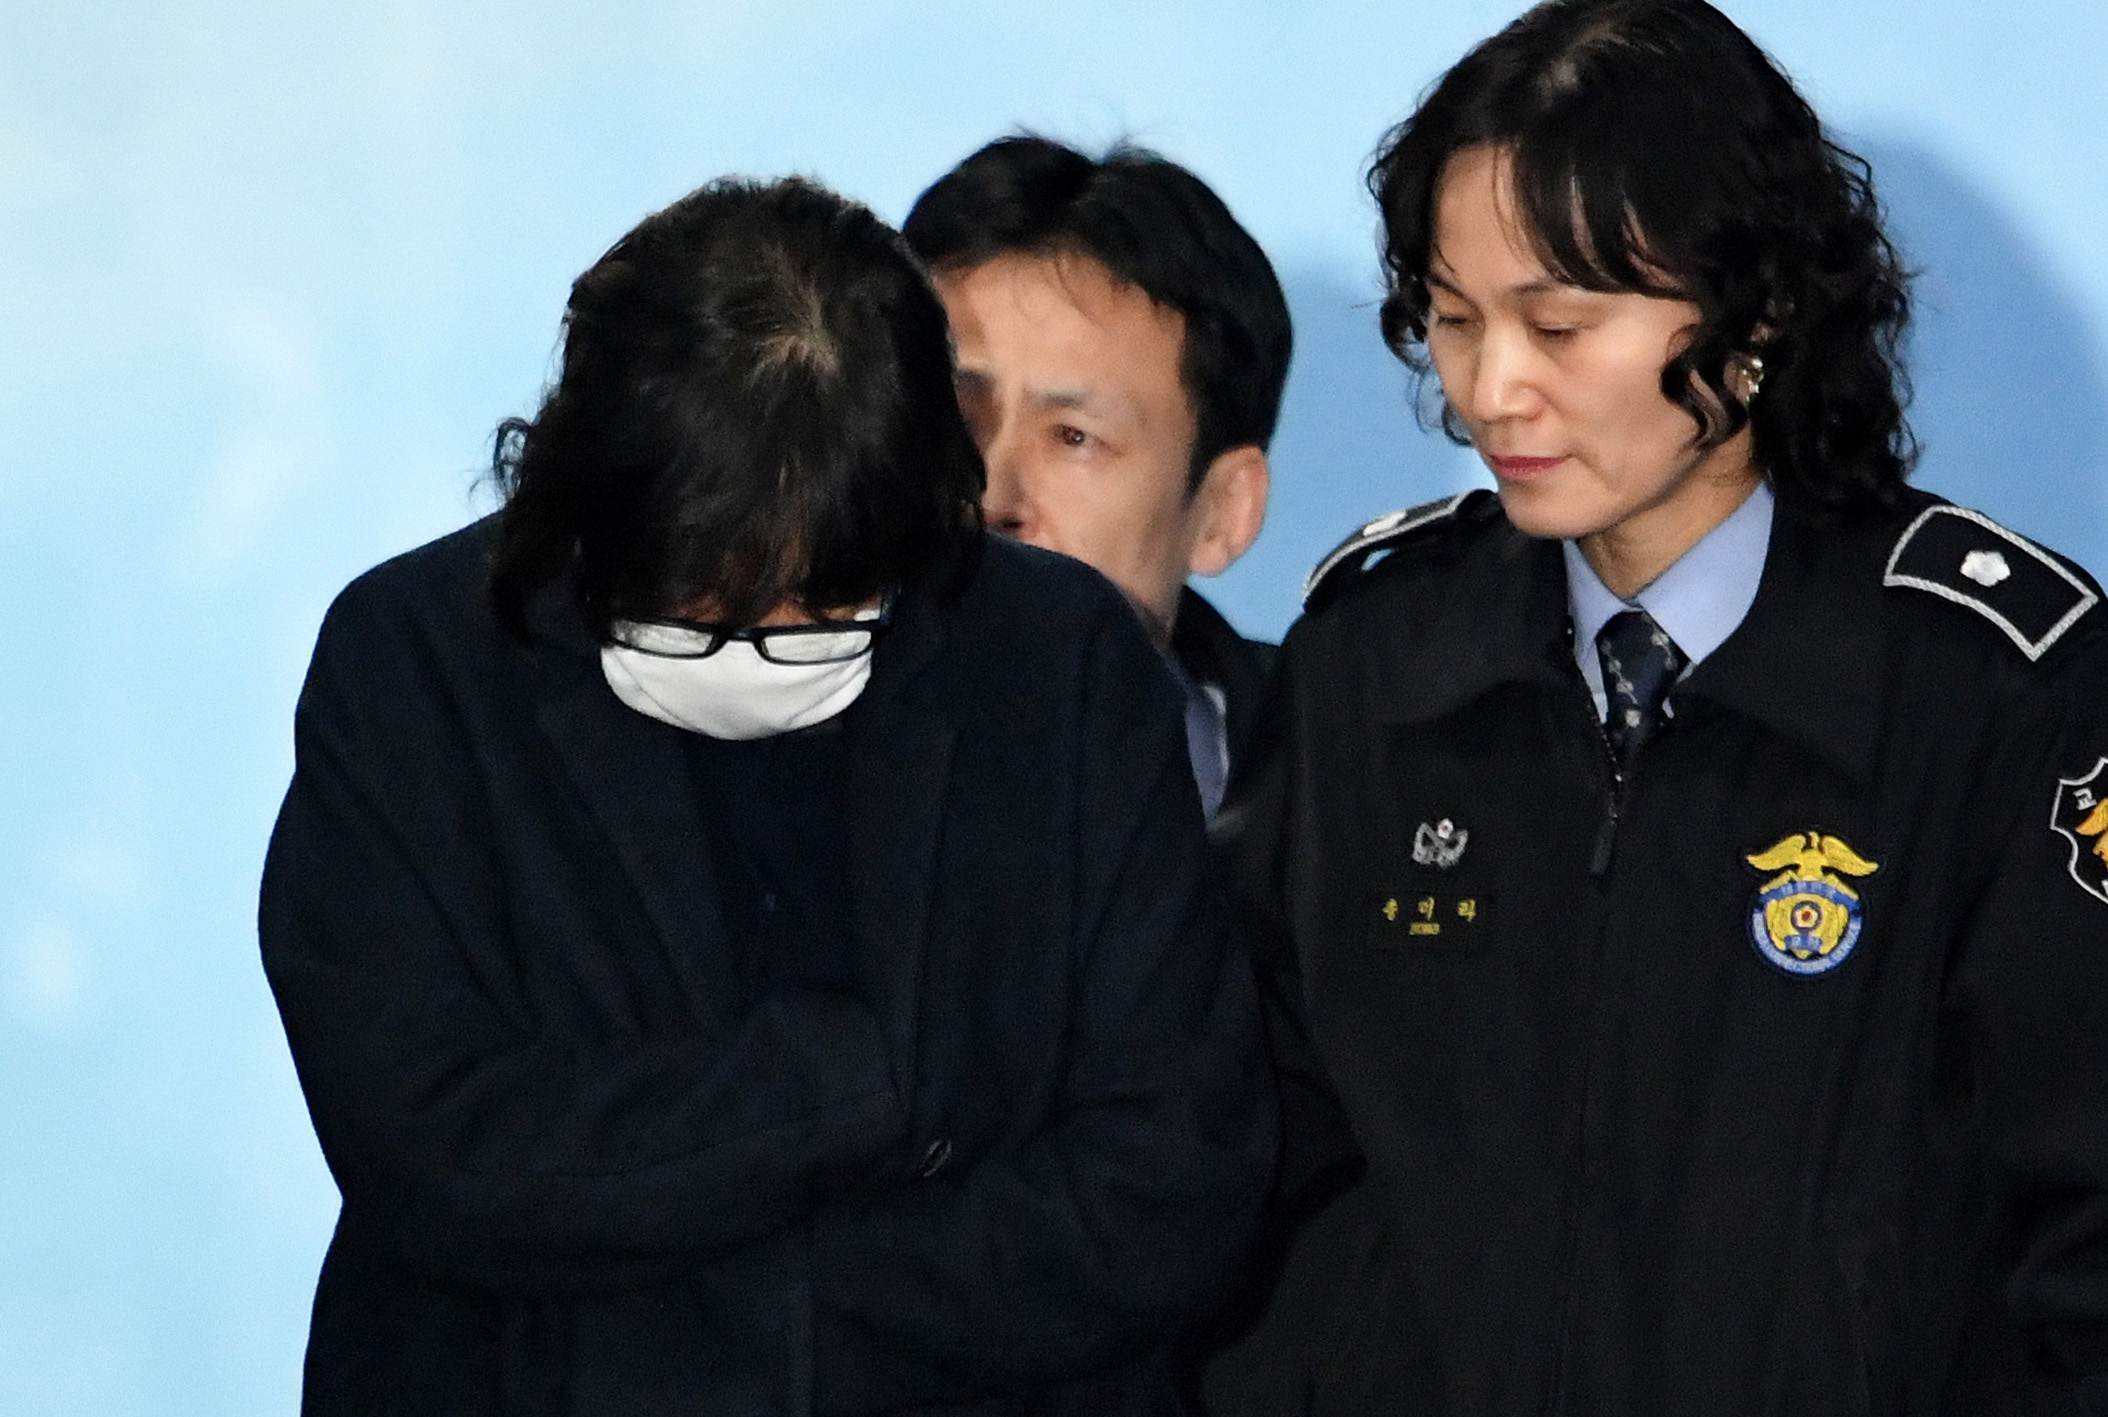 Choi Soon-Sil, front left, the woman at the heart of a lurid political scandal engulfing South Korea's President Park Geun-hye, is escorted following her formal arrest, from the Central District Court in Seoul on Nov. 3, 2016